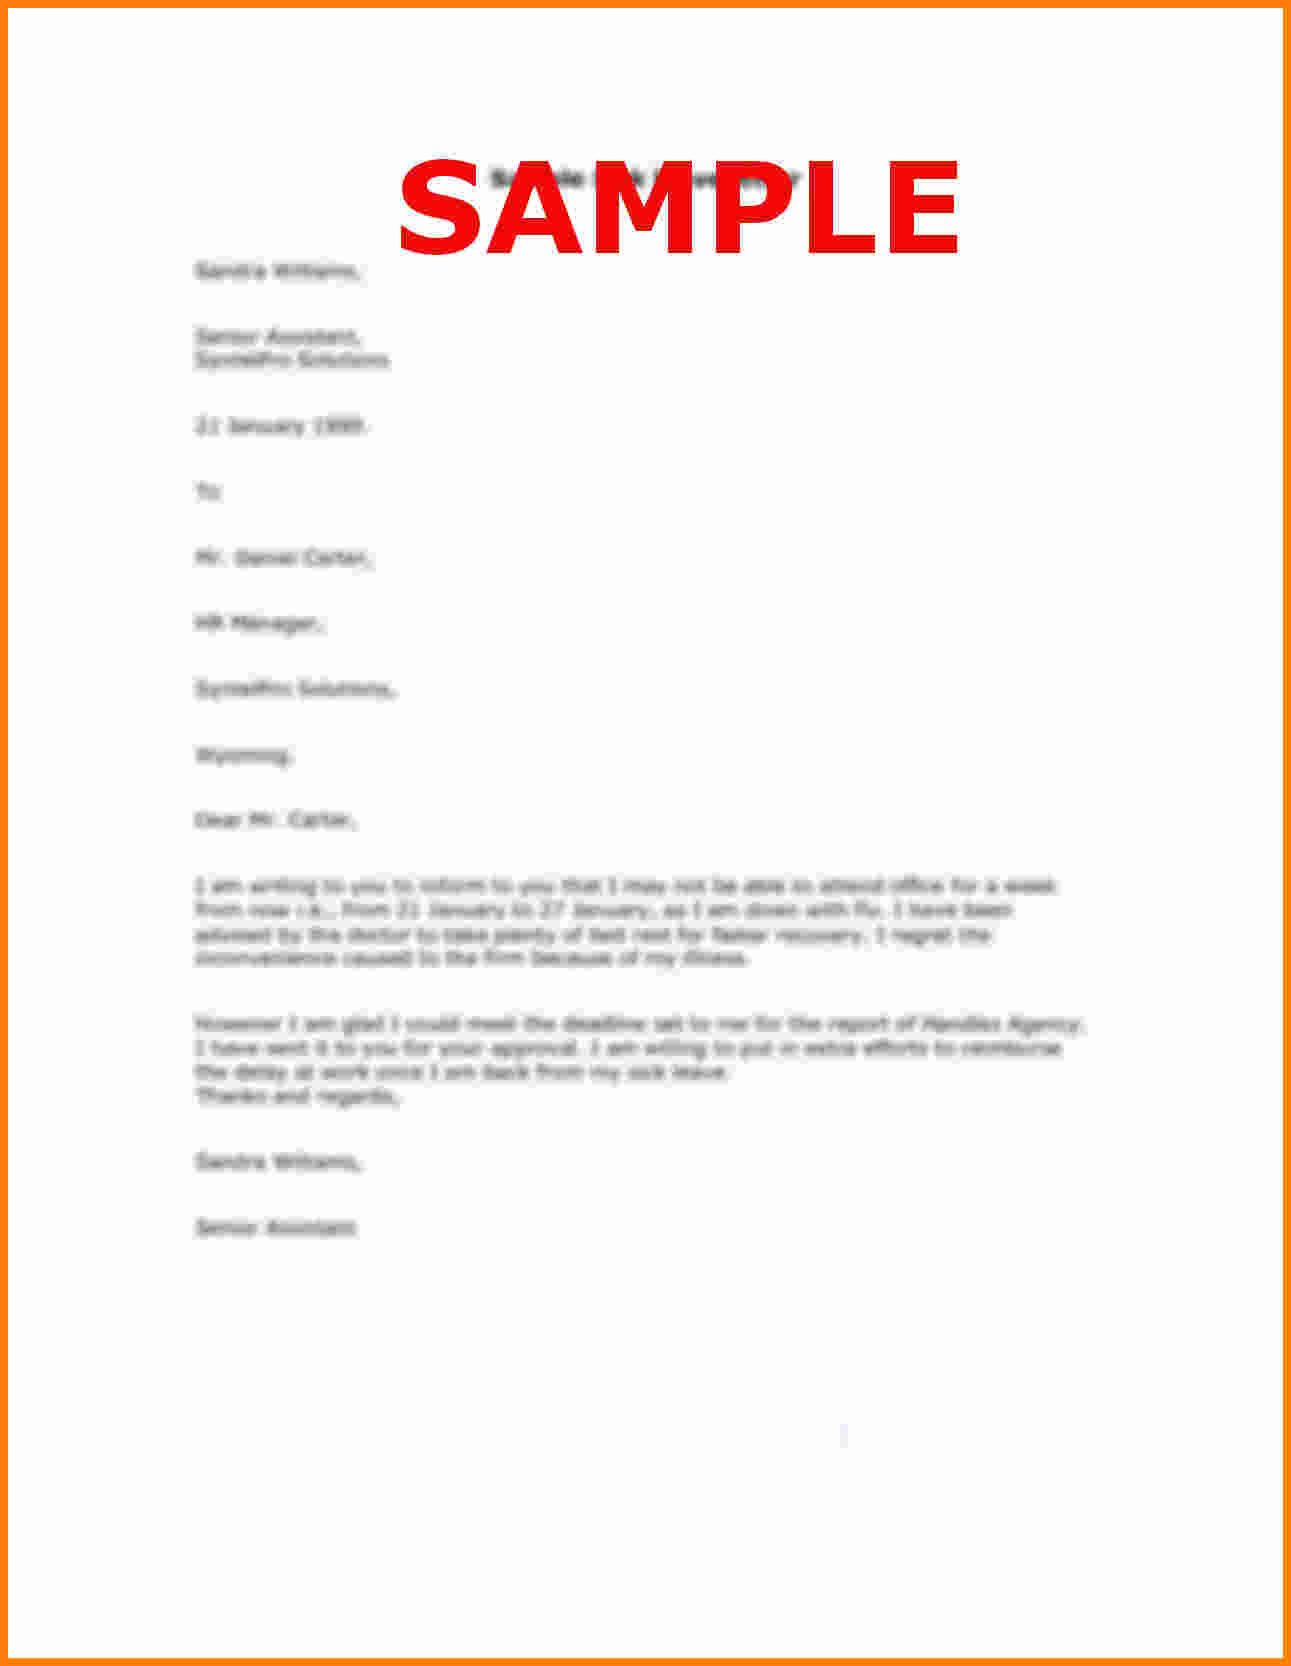 letter format personal sample reason leave letterg casual